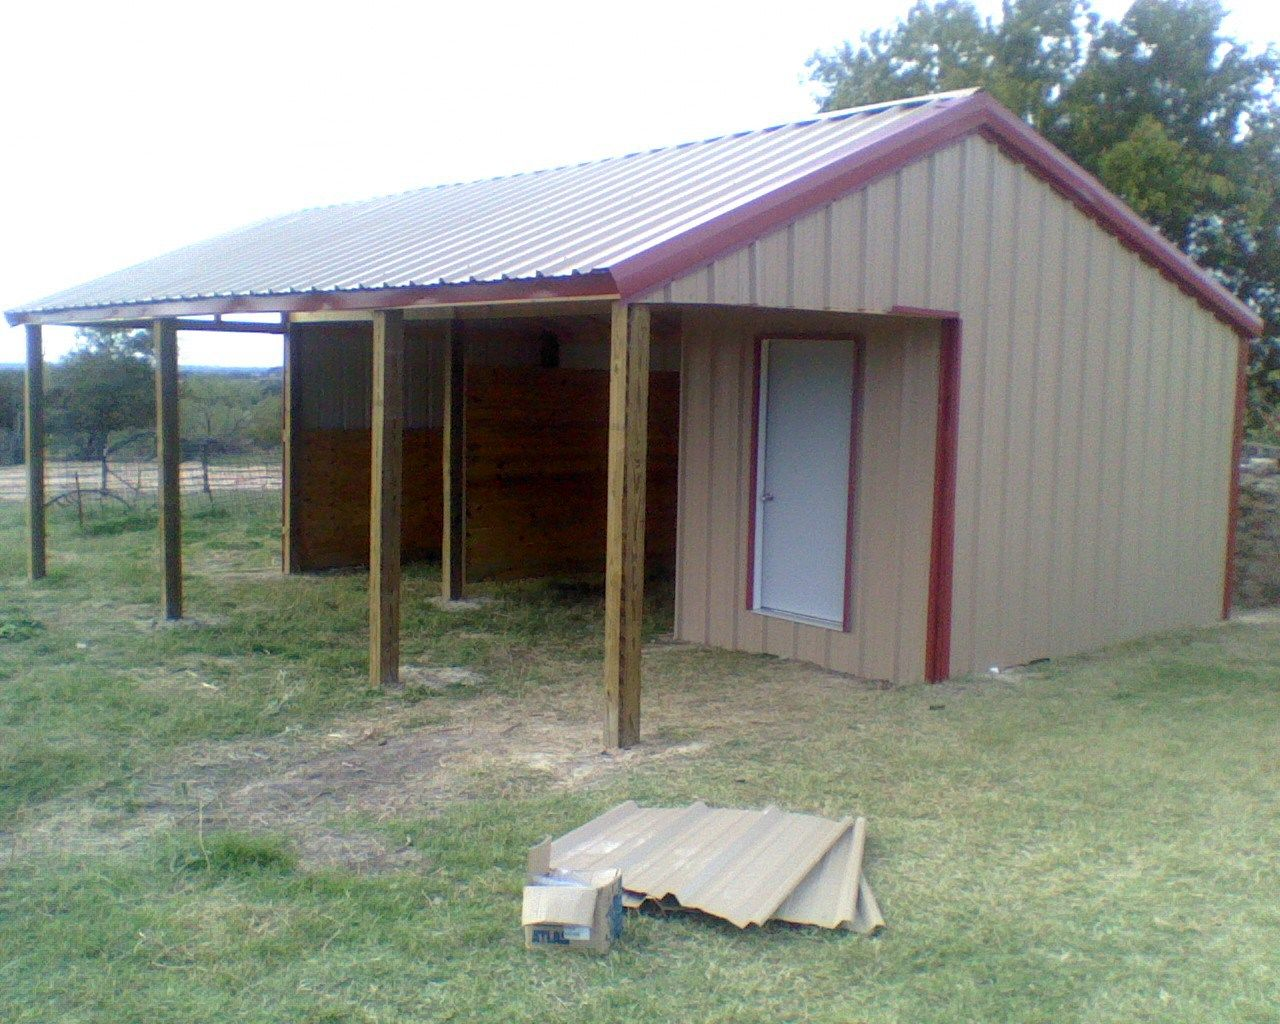 Farm Shed Ideas Of Small Pole Barns Small Pole Barns Small Horse Barns Pole